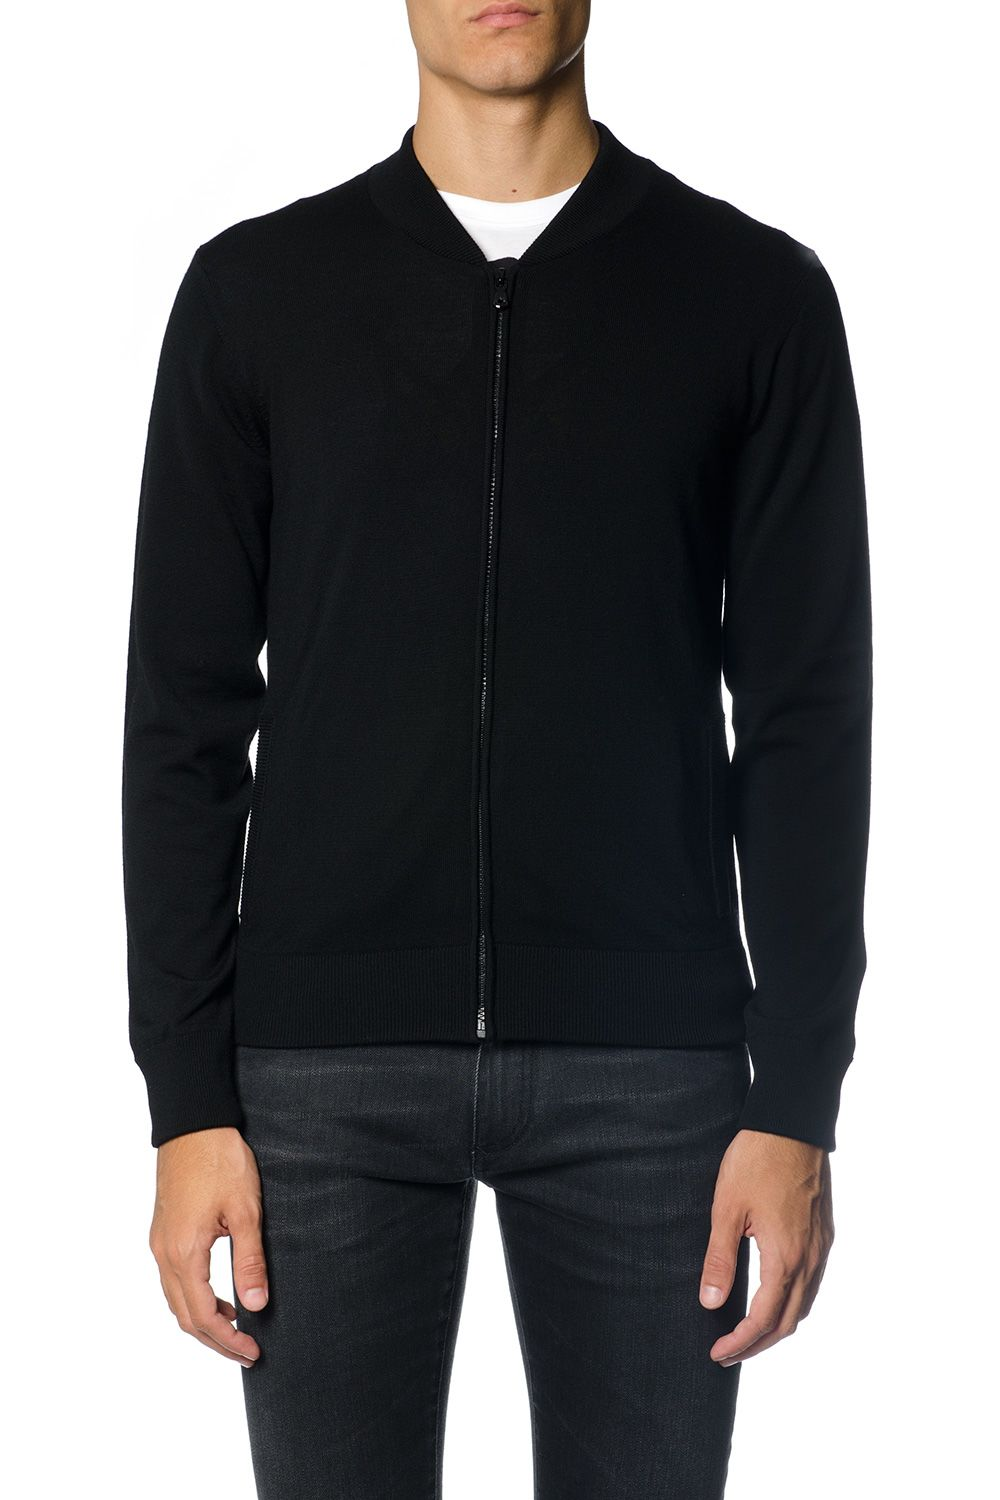 Dolce & Gabbana Zipped Sweater